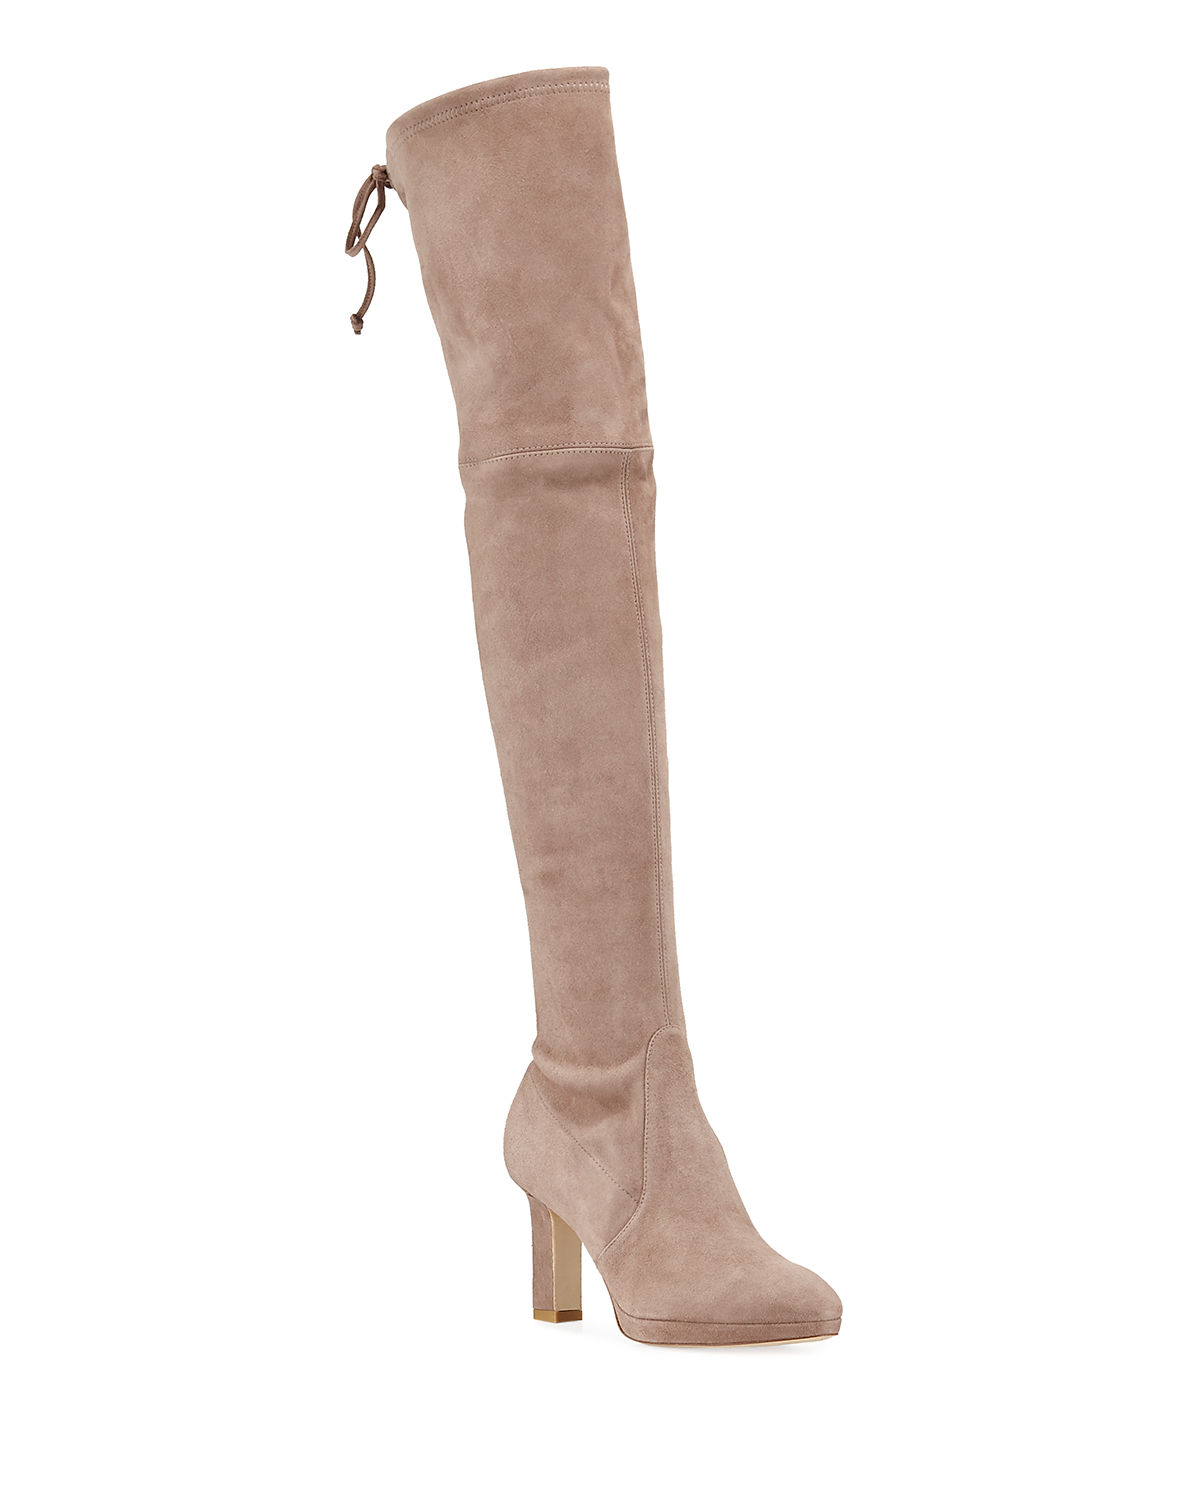 4bb0b6d9d Ledyland Suede Over-The-Knee Boots